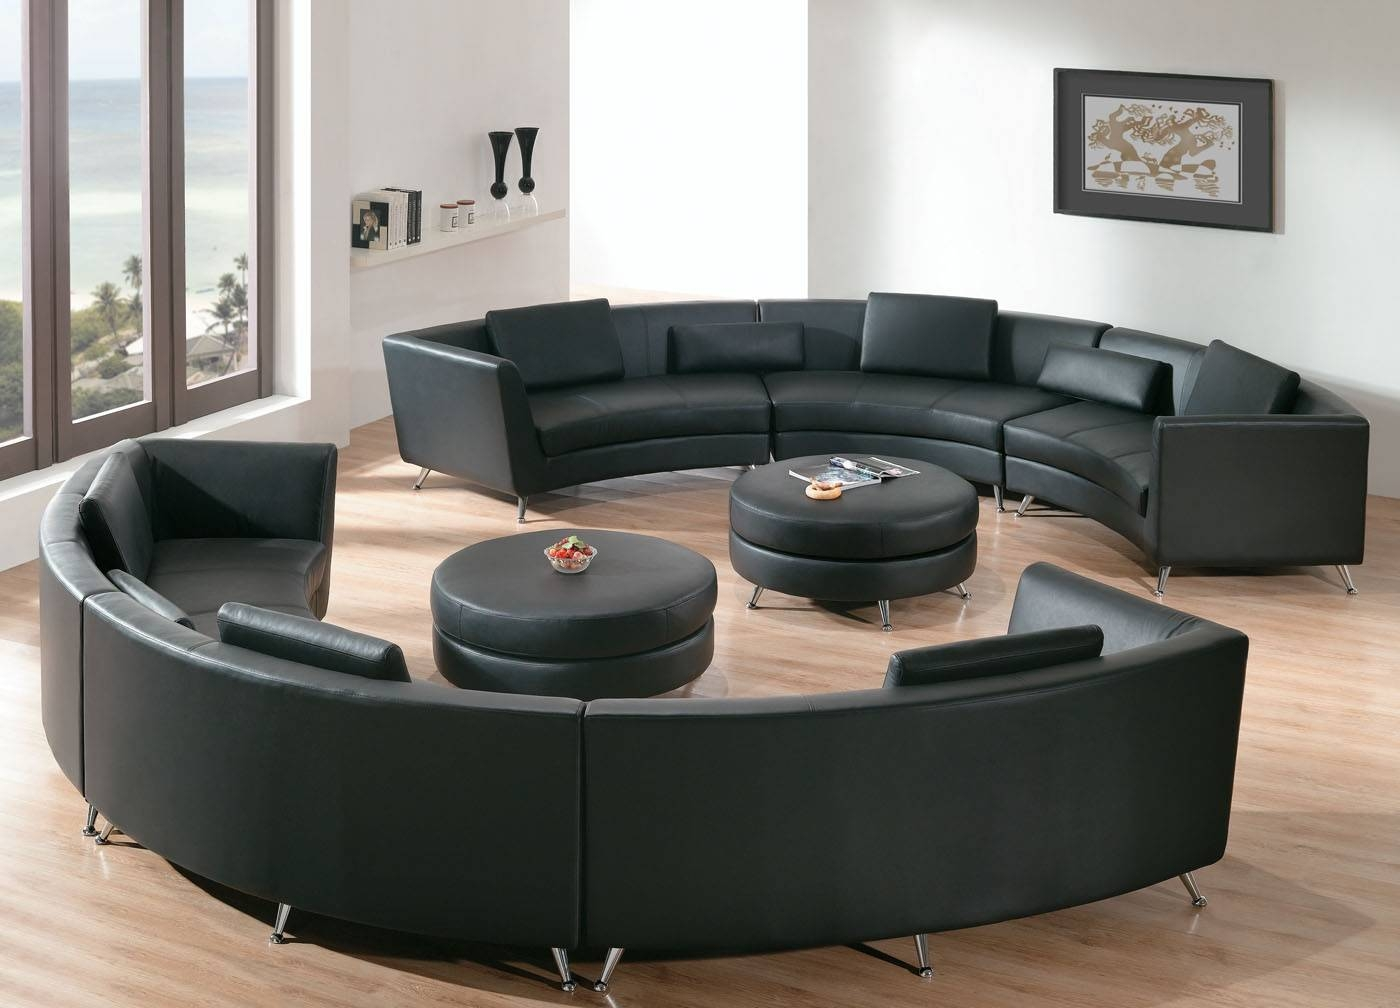 Round Sectional Sofa For Unique Seating Alternative - Traba Homes regarding Circular Sectional Sofa (Image 22 of 30)